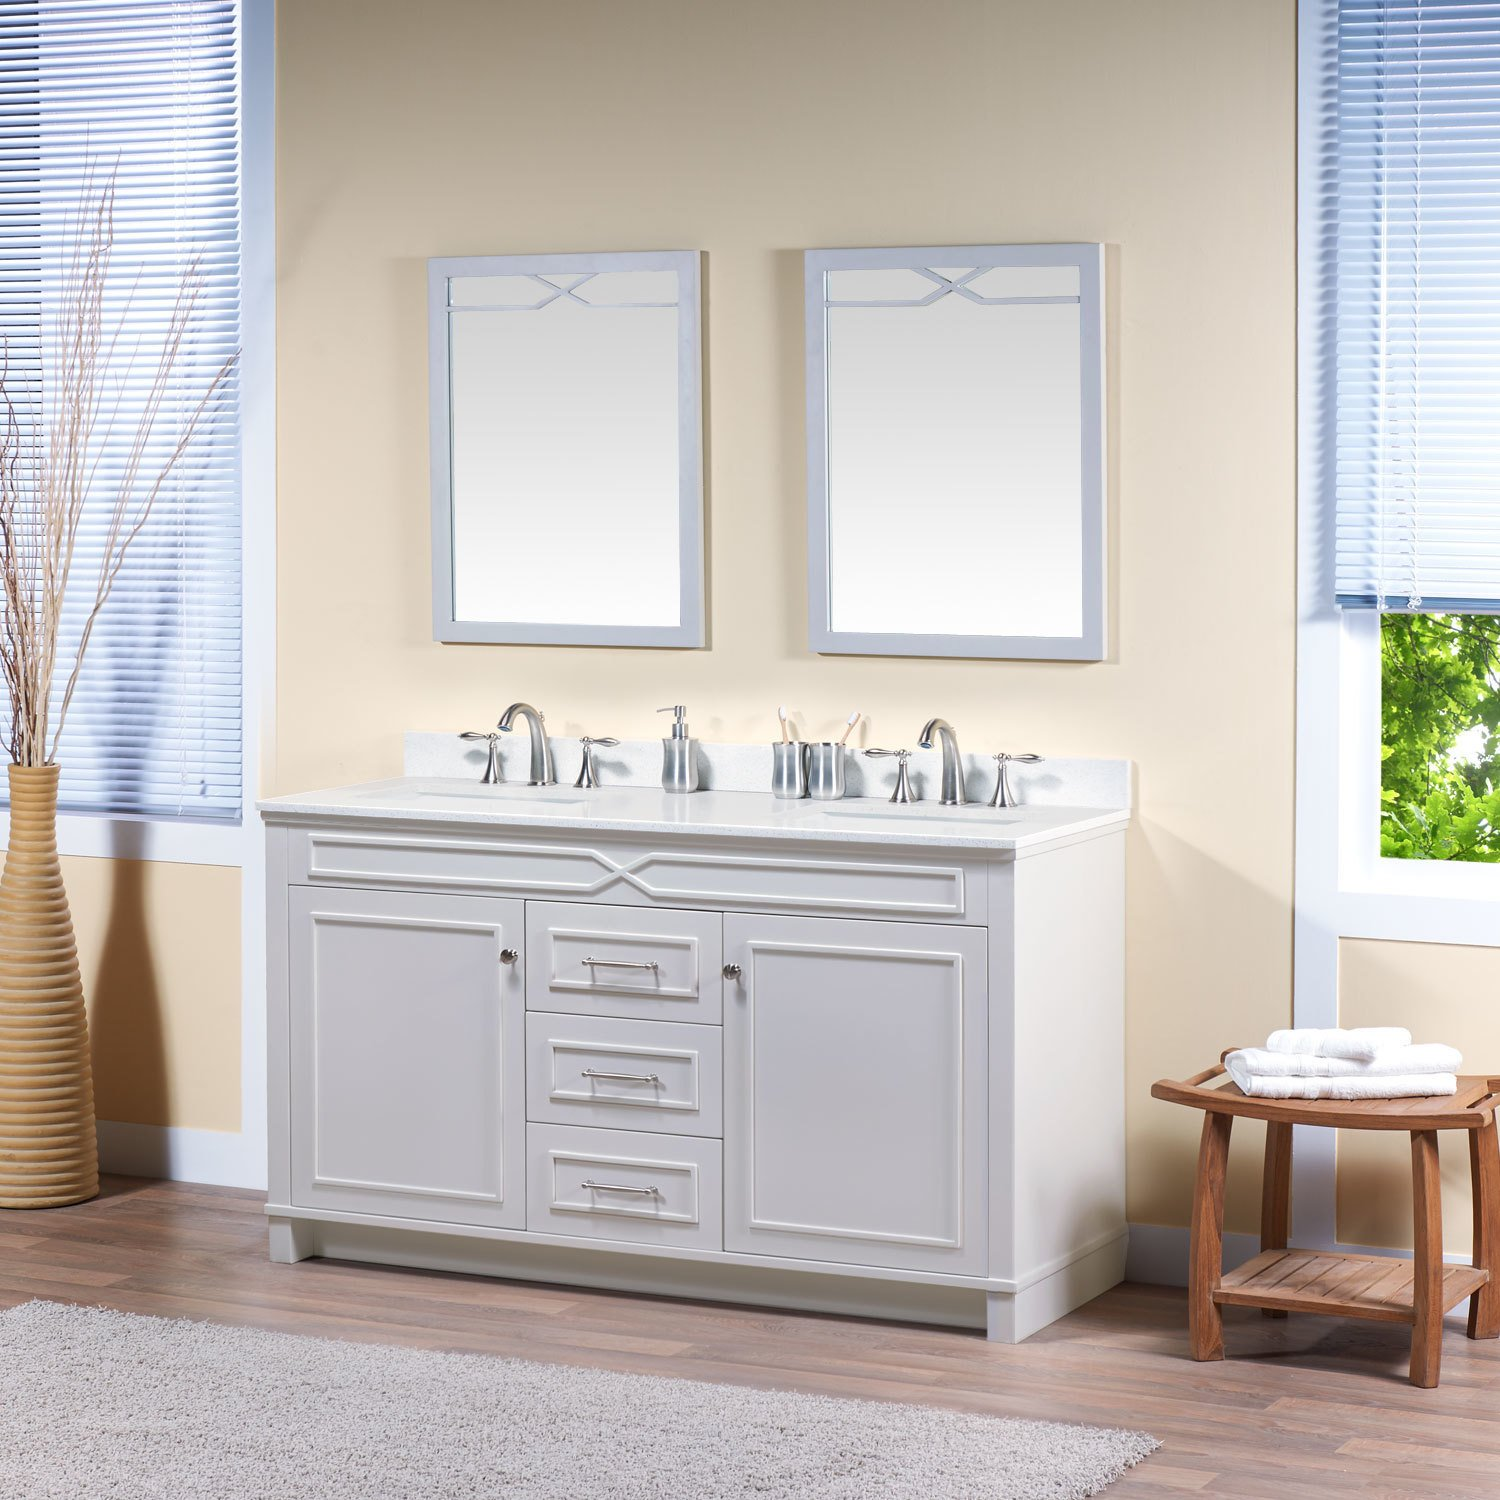 MAYKKE Abigail 60'' Bathroom Vanity Set in Birch Wood French Grey Finish | Double Gray Floor Mounted Cabine with Countertop, Backsplash in White Quartz and Ceramic Undermount Sink in White | YSA1376002 by Maykke